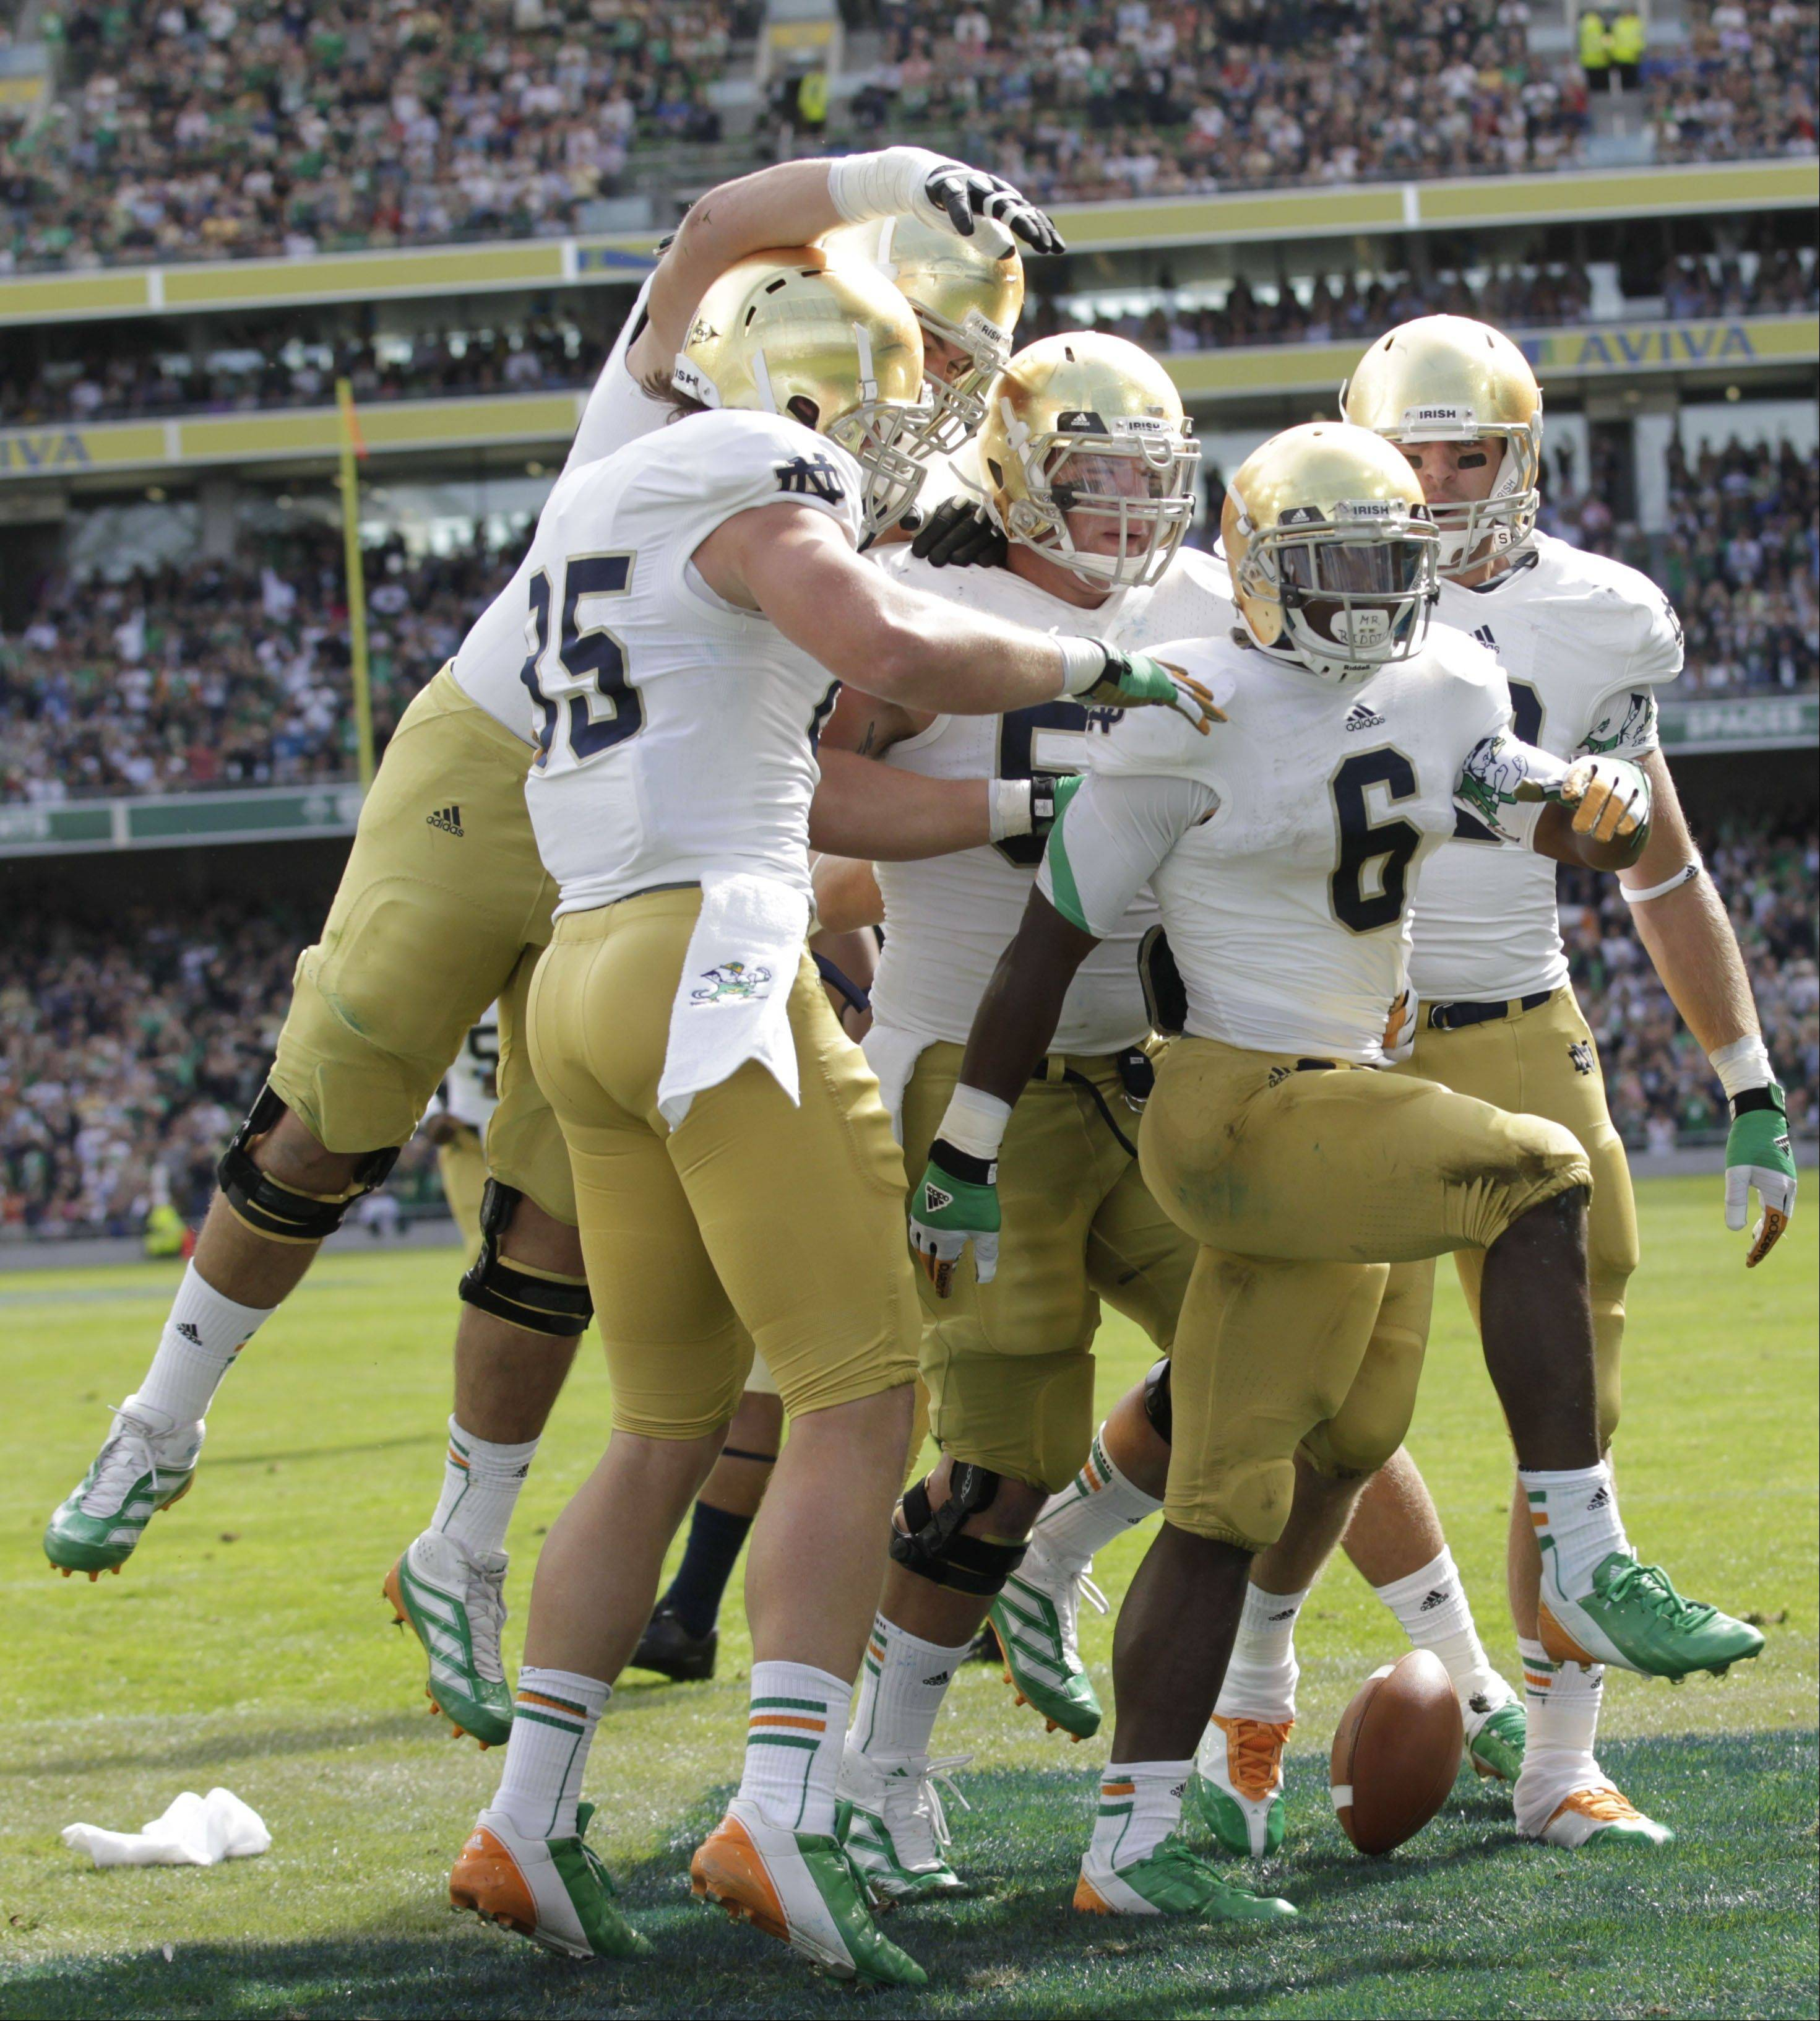 Notre Dame�s Theo Riddick, right, celebrates with teammates after scoring a touchdown against Navy last Saturday in Dublin, Ireland.